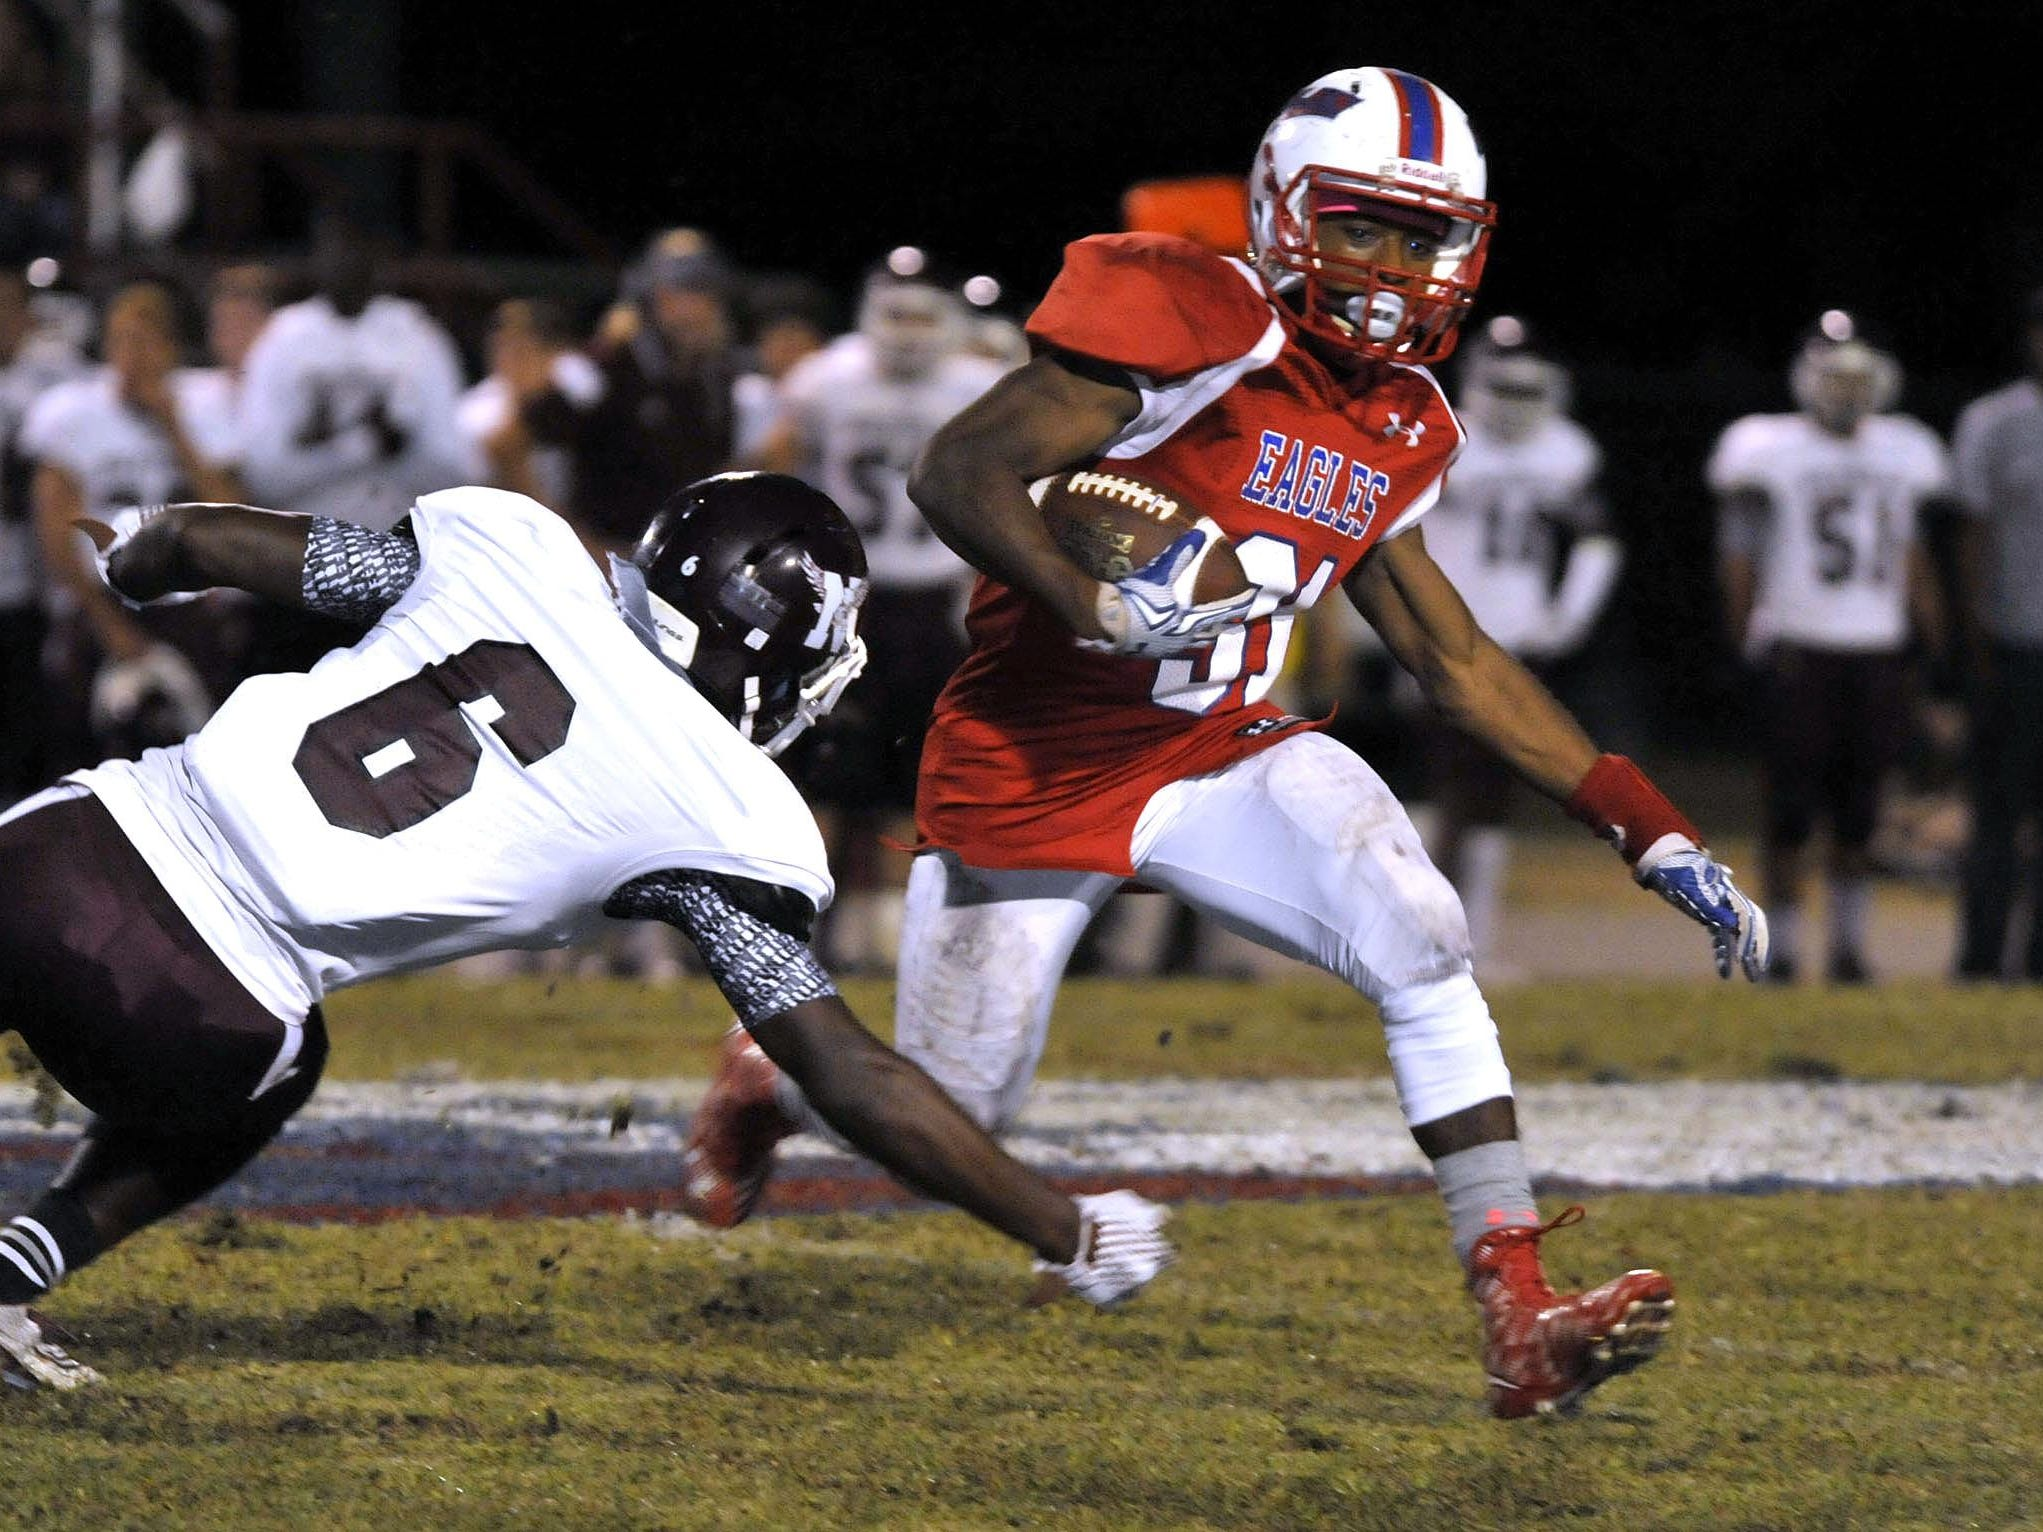 Devon Cooke of the Pine Forest Eagles manages to out maneuver Braijon Carr of the Niceville Eagles in first-half action in their game Friday night at Pine Forest High. However, Niceville went on to win the game 42-14.